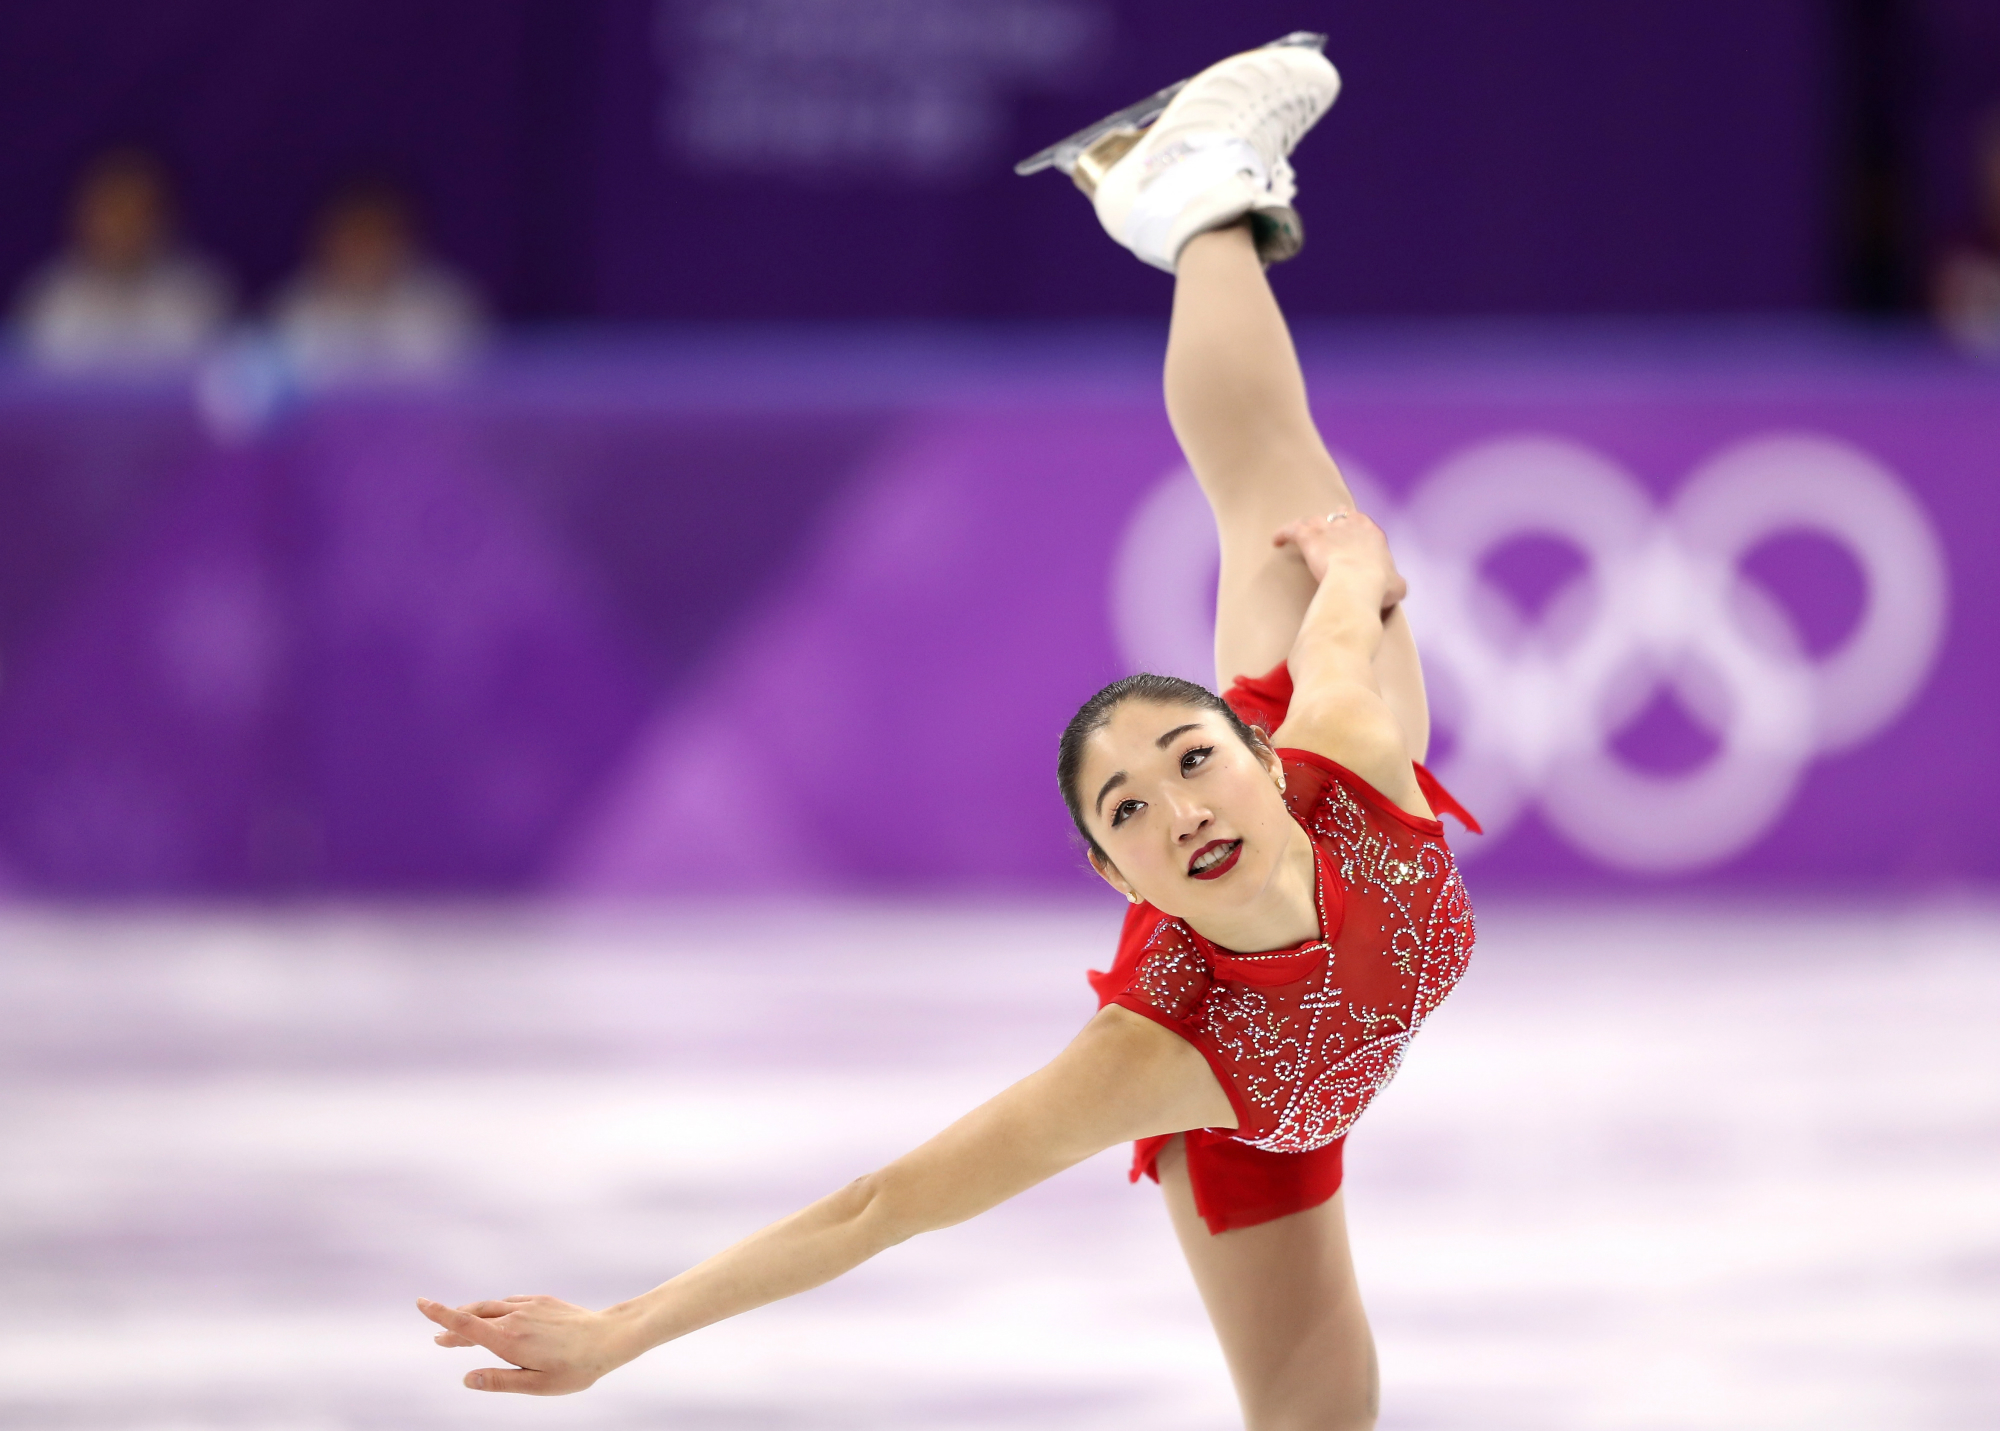 Mirai Nagasu Wants to Break Into the TV World After Her Olympic Figure Skating Performance